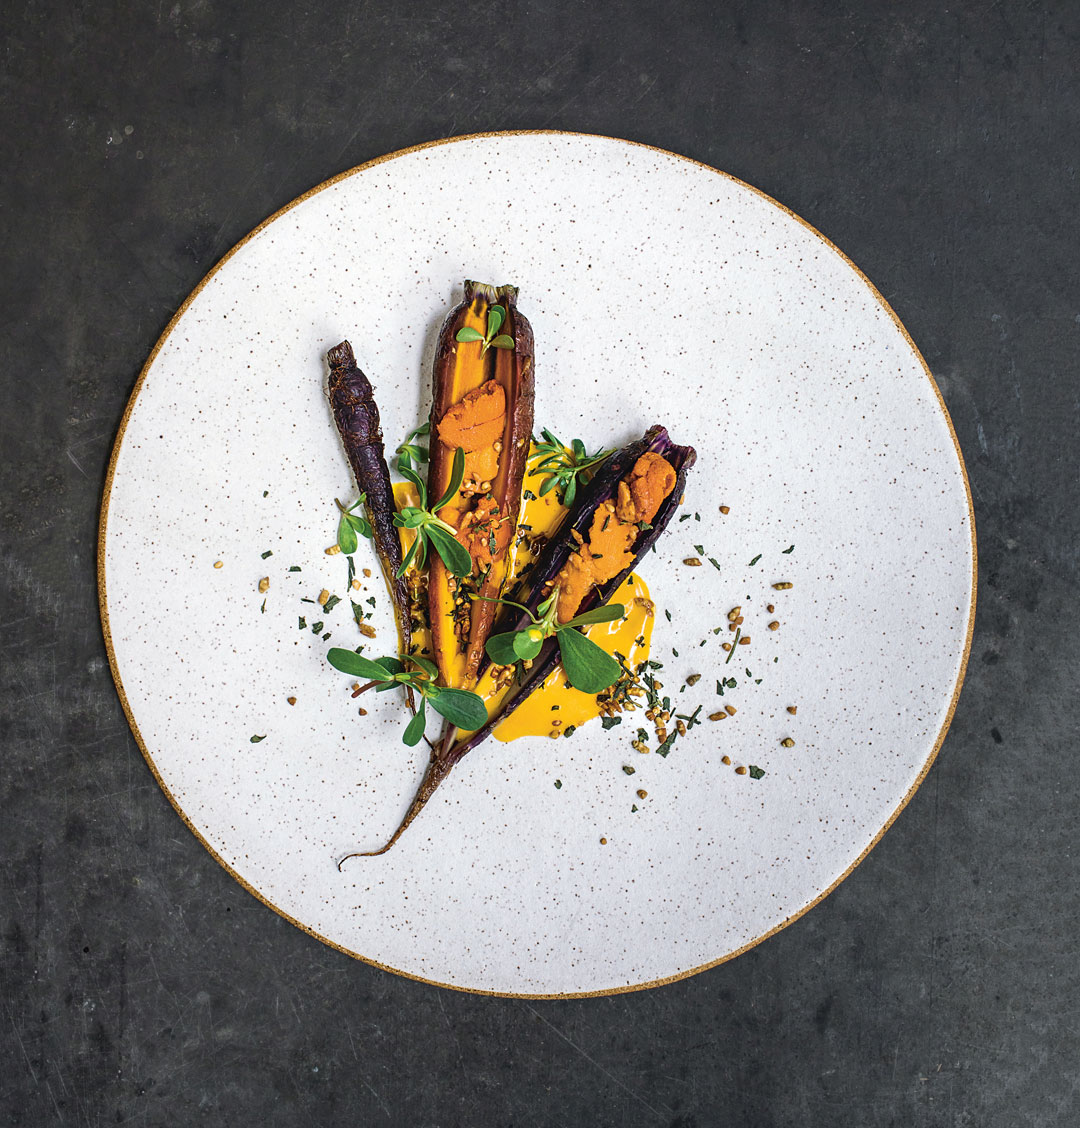 Carrot, Uni, Genmaicha, from A Very Serious Cookbook. Photography by Matty Yangwoo Kim. All ceramics by Noble Plateware